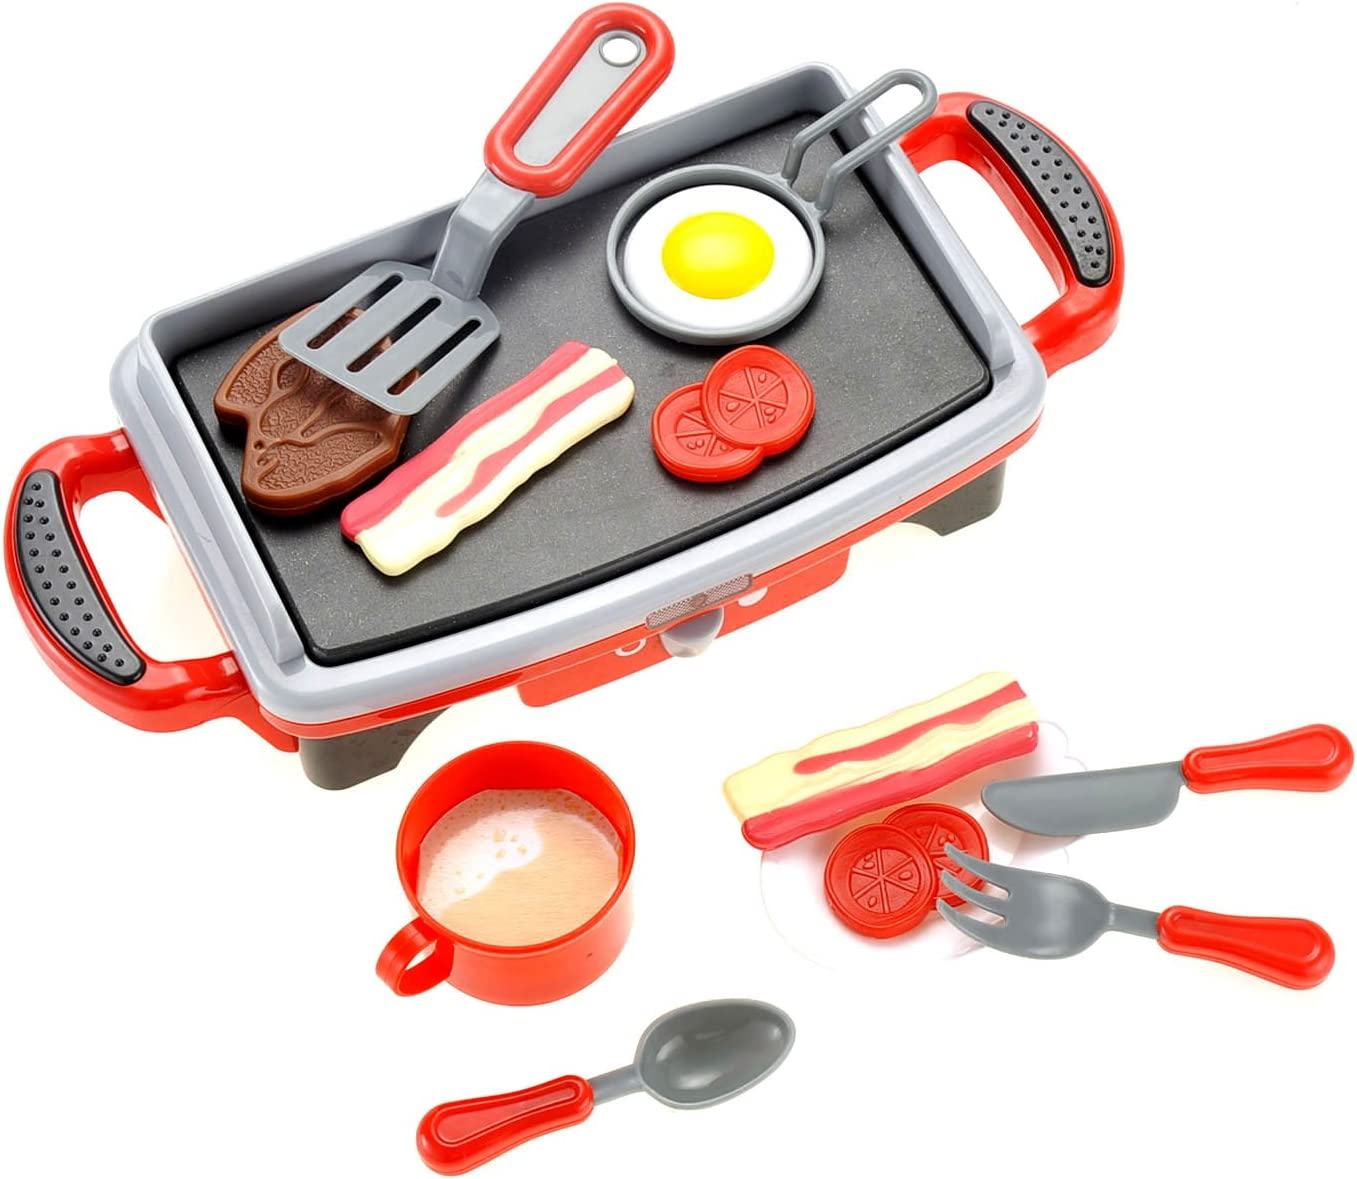 PowerTRC Breakfast Griddle Electric Stove Play Food Kitchen Grill Set for Kids